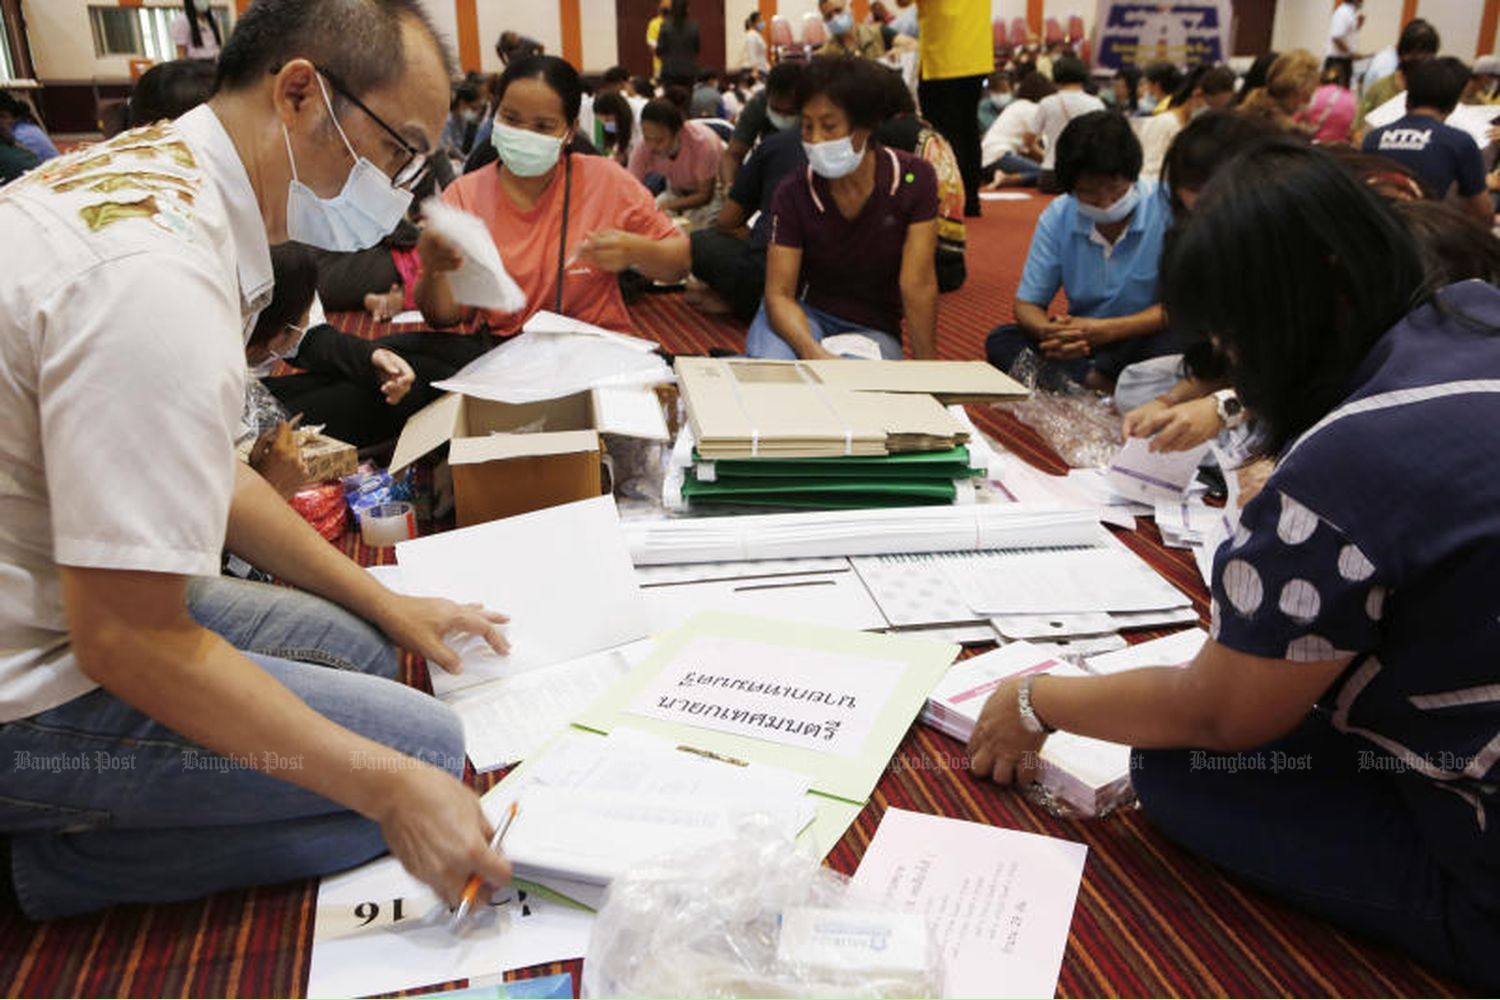 Officials wearing masks check the readiness ahead of the local elections at Rangsit Municipality Office in Thanyabuti, Pathum Thani province, on Saturday. (Photo by Apichit Jinakul)